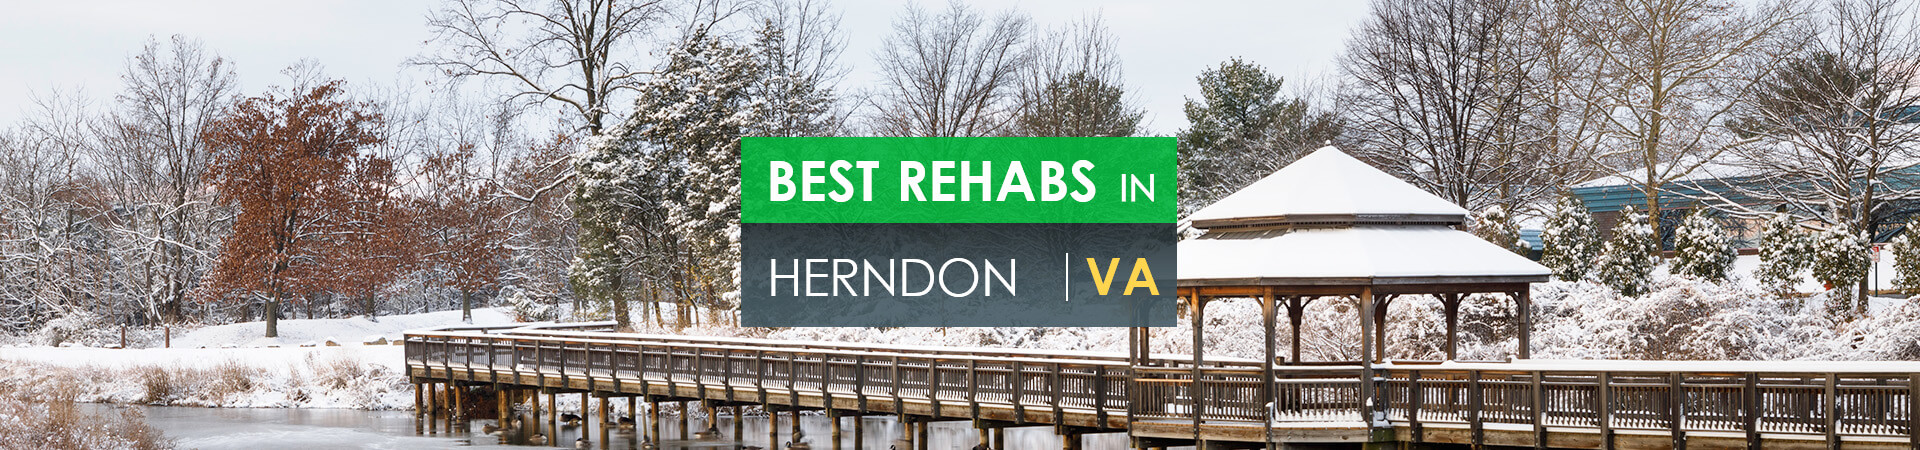 Best rehabs in Herndon, VA